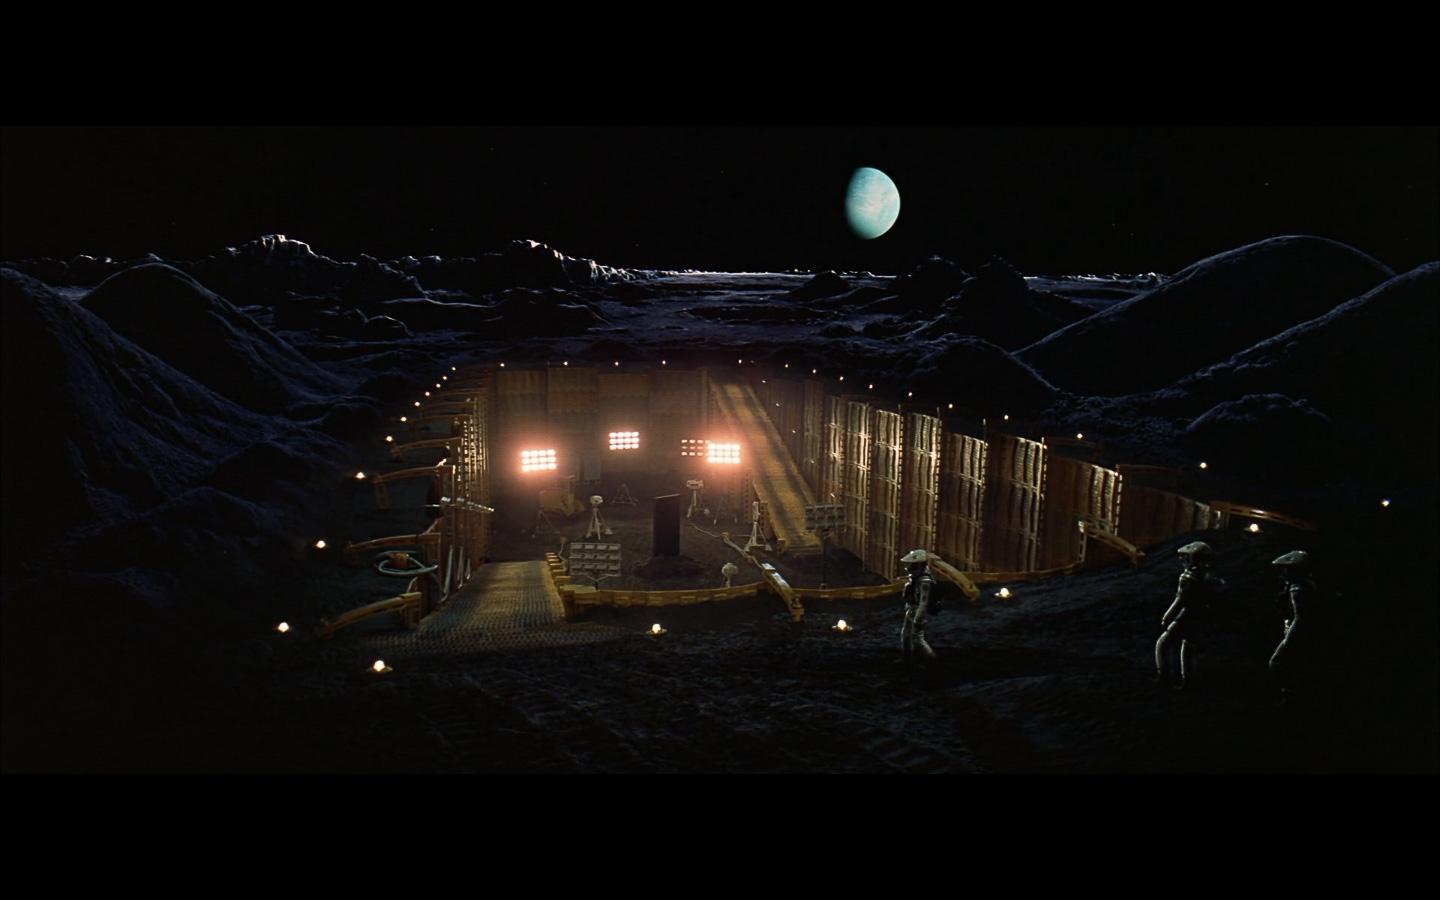 scene on the moon obelisk - space odyssey-3